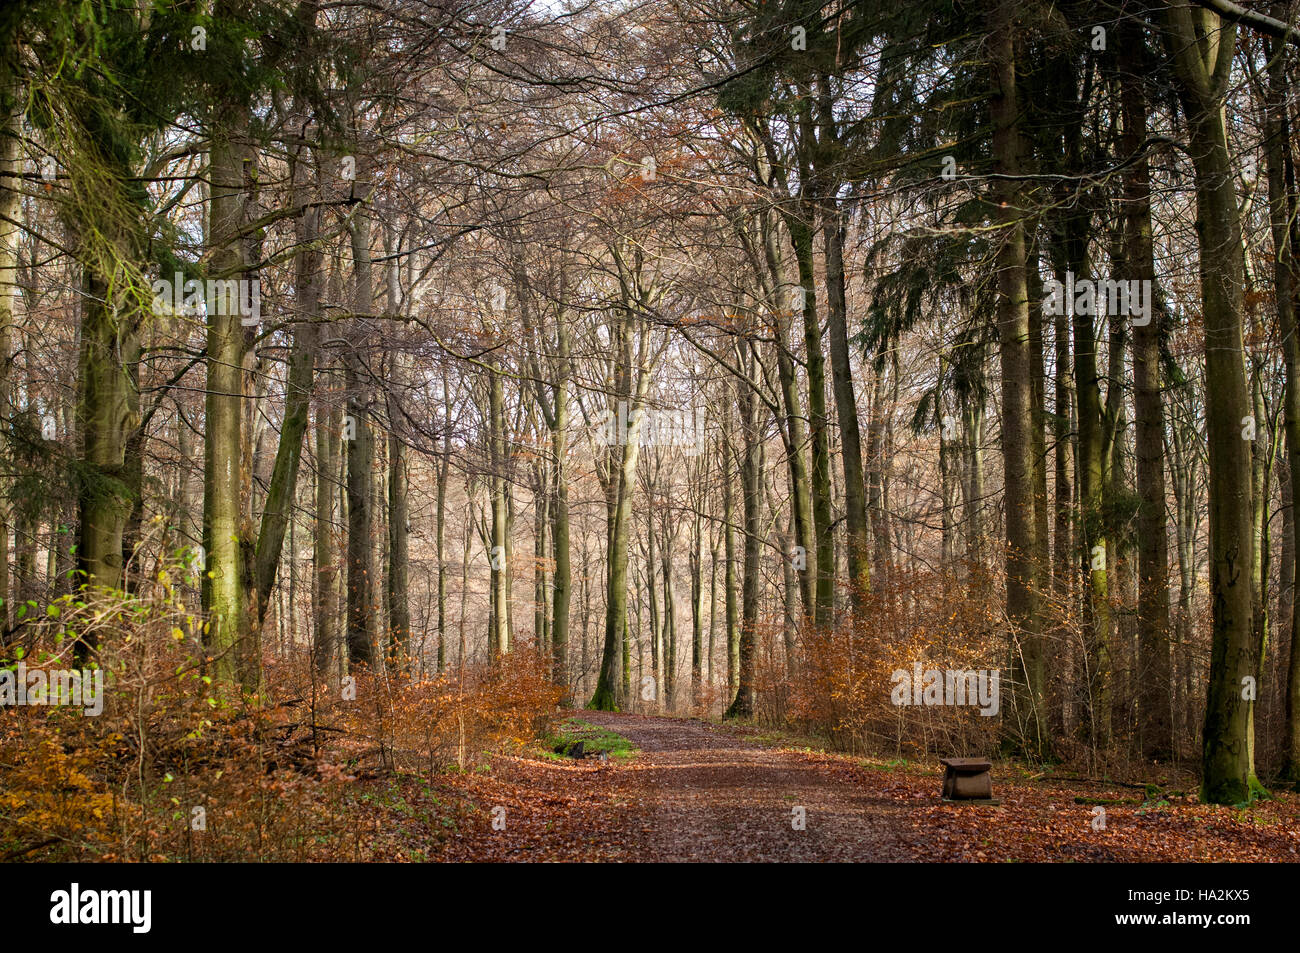 Author & Forester Peter Wohlleben manages this 4000 year old beech forest for the community of Hümmel, - Stock Image